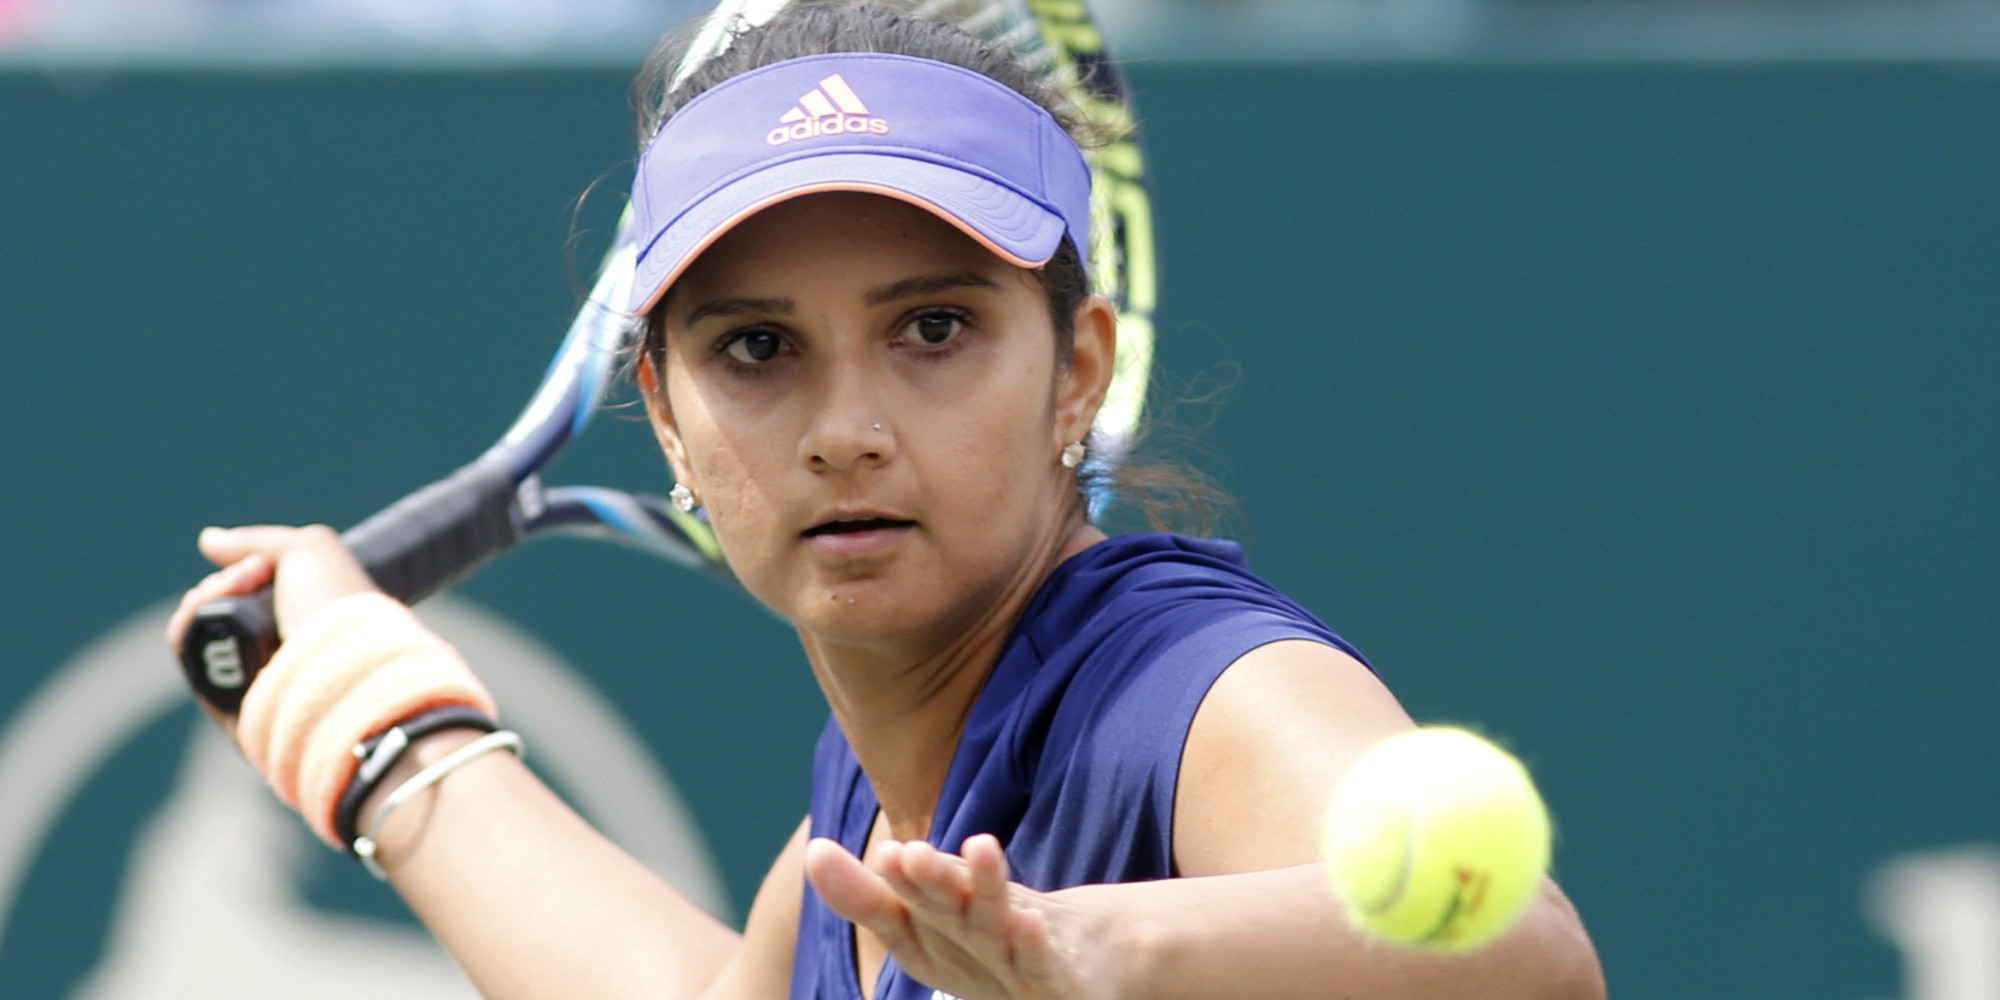 Sania Mirza: The Queen of India's Sports World - WorldMuslimPedia